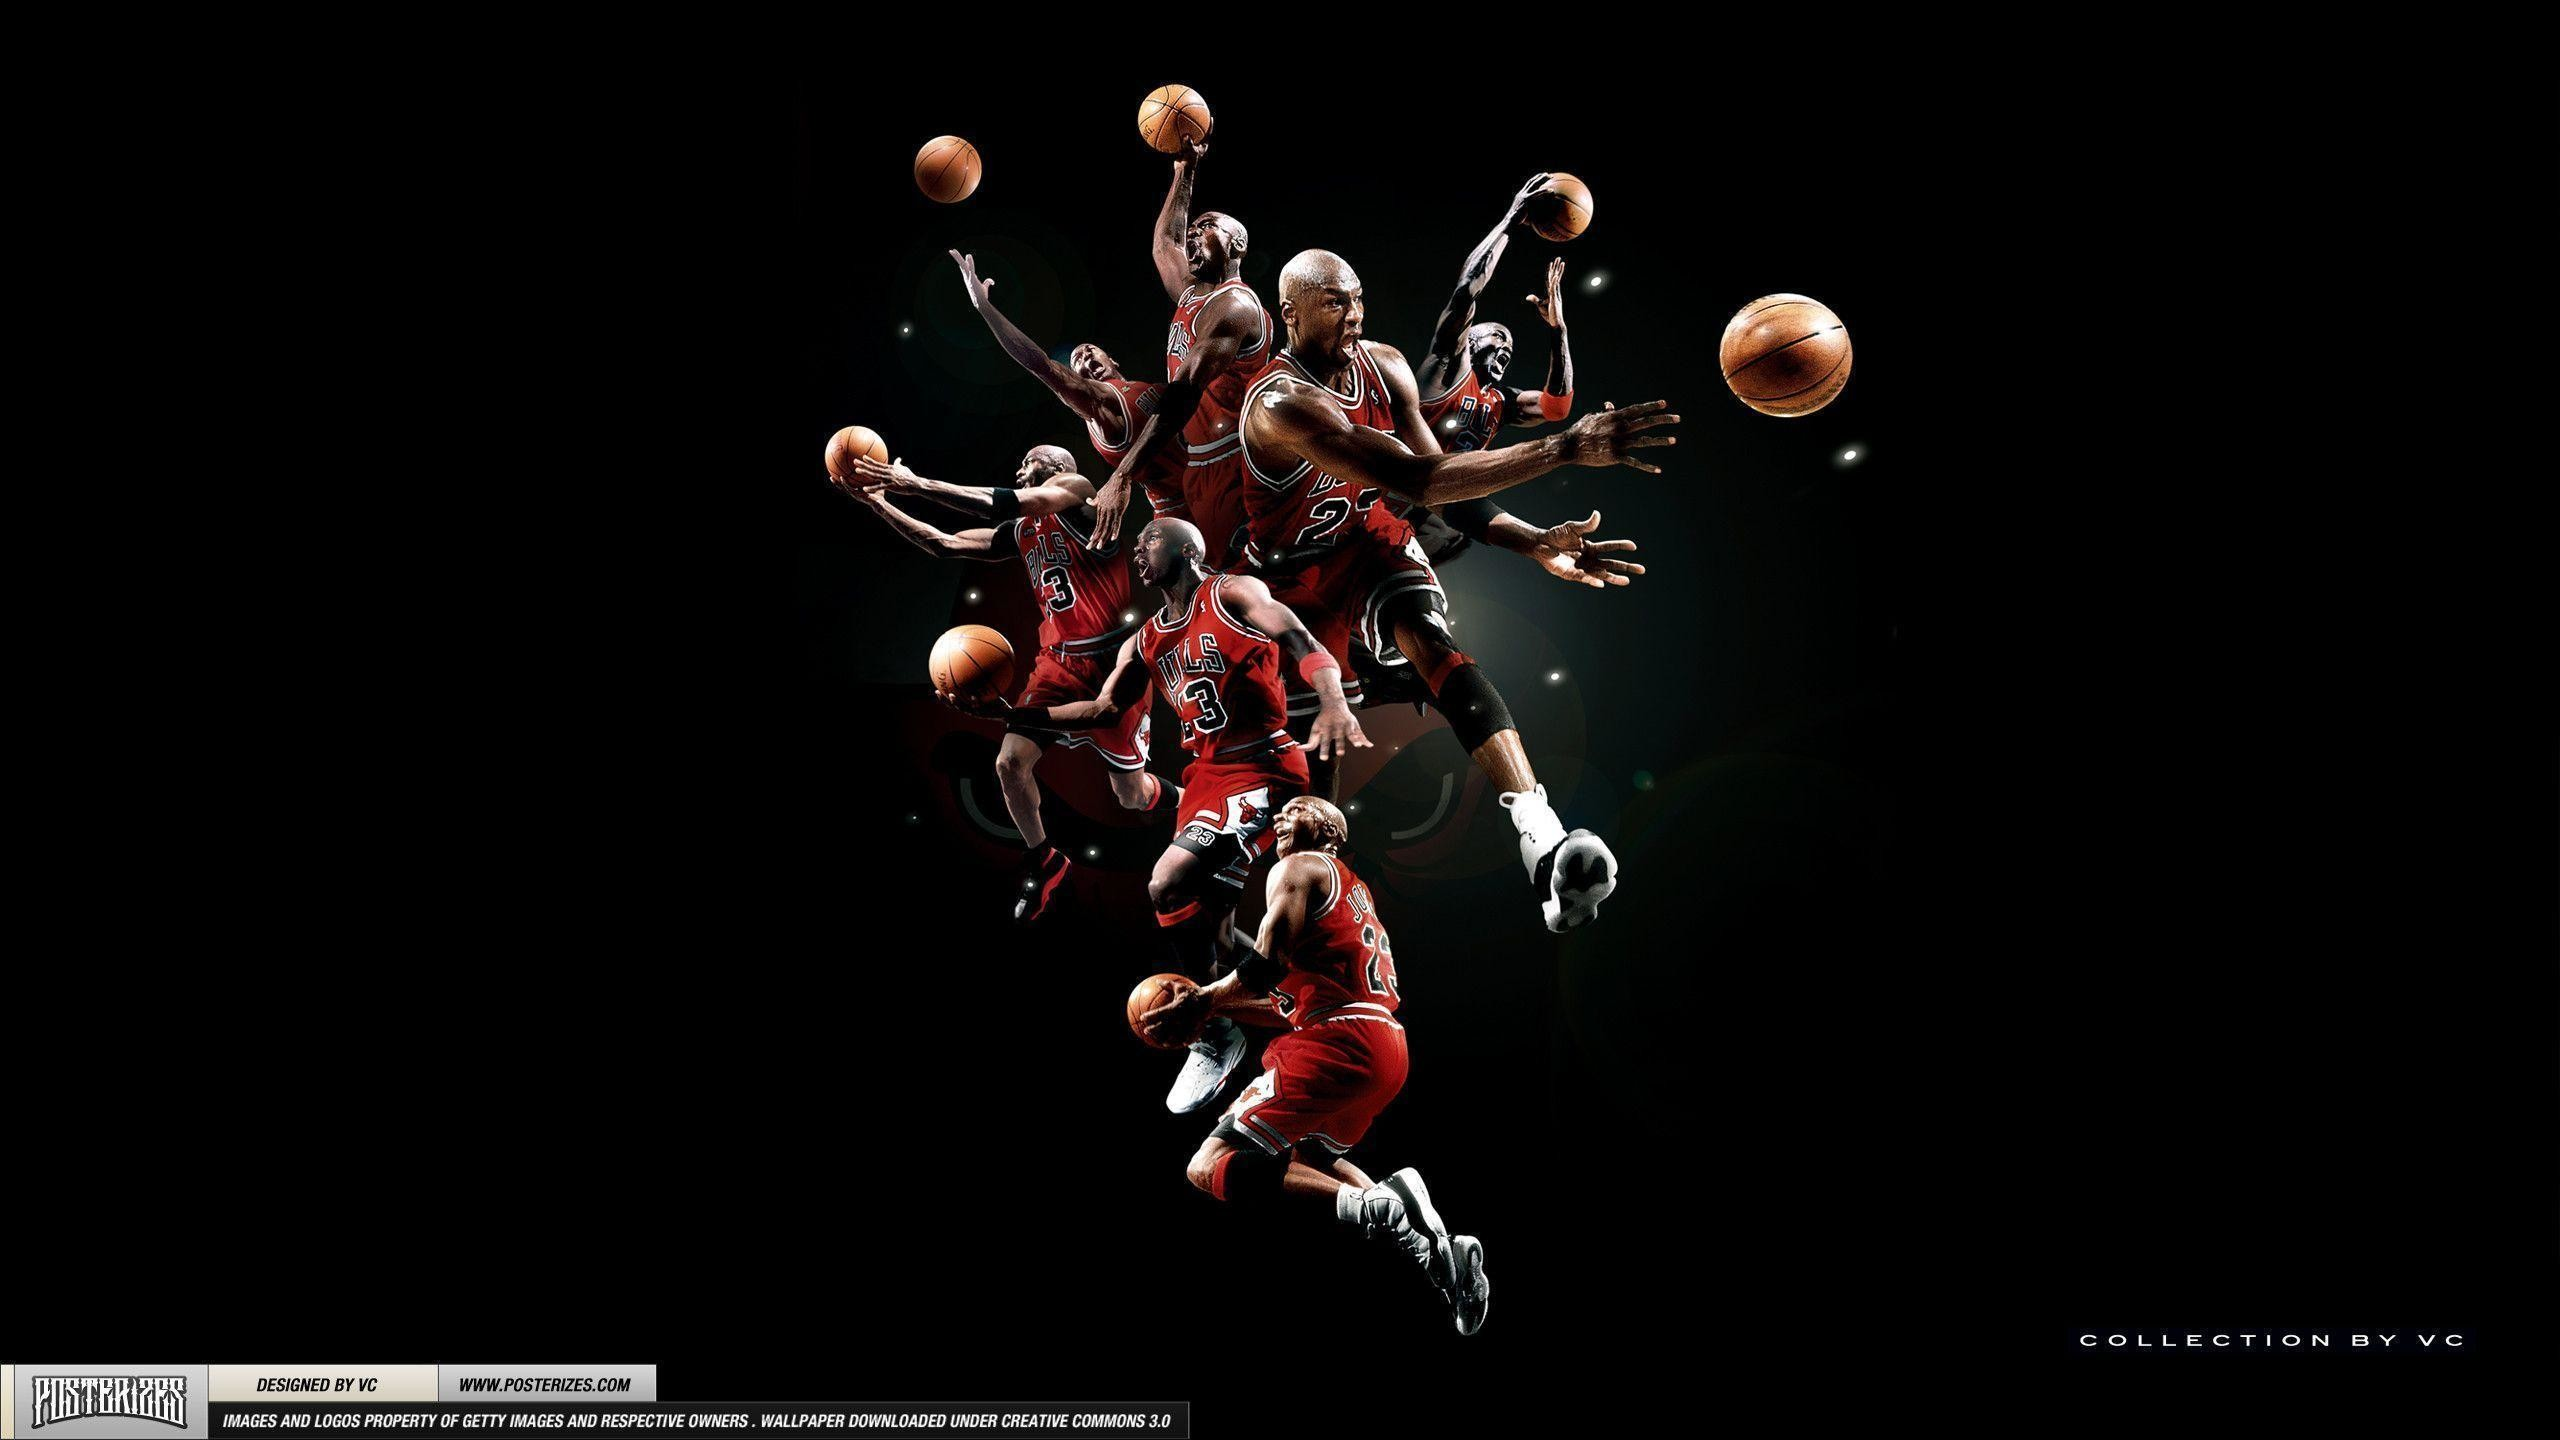 2560x1440 Michael Jordan Logo Wallpapers Images 6 HD Wallpapers | Hdimges.